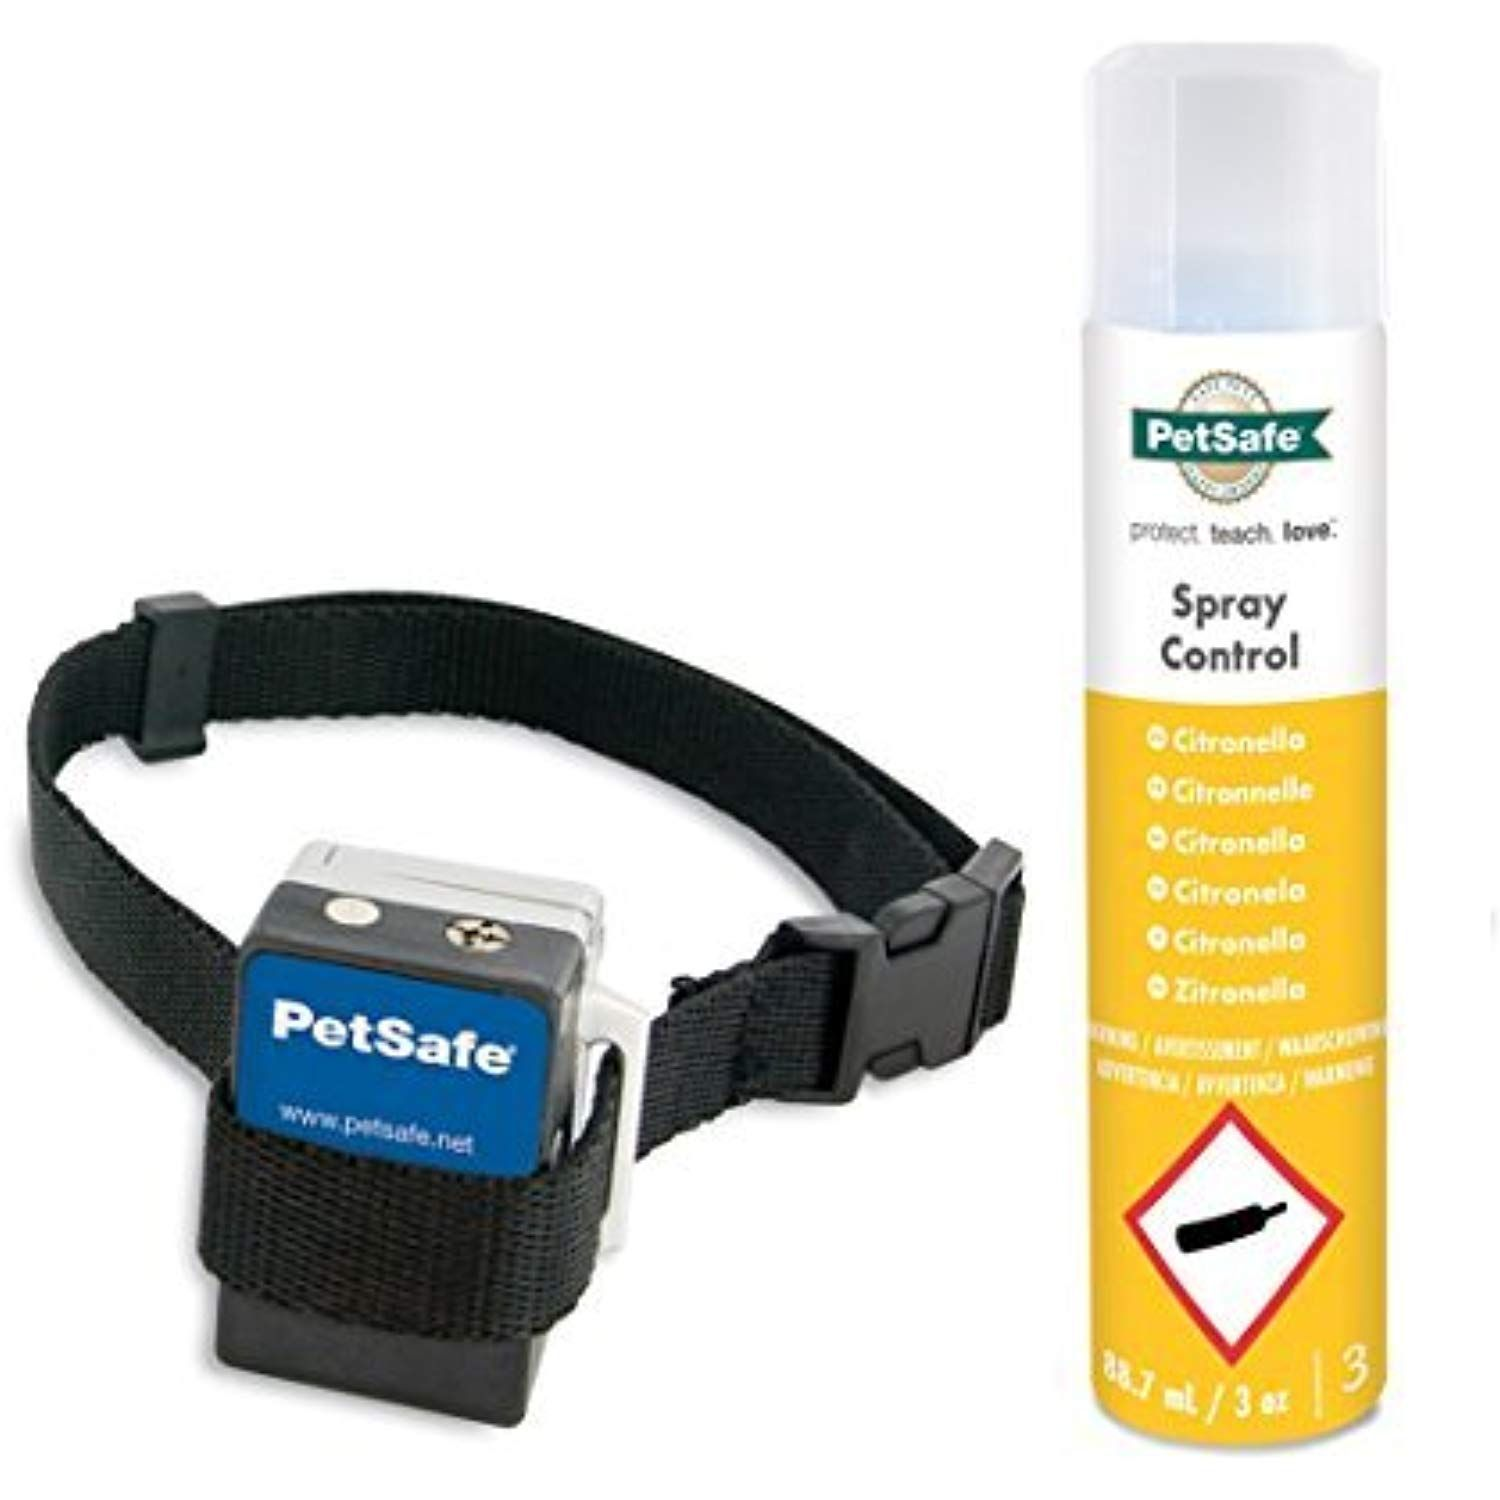 Petsafe Gentle Spray Bark Collar For Dogs Citronella Anti Bark